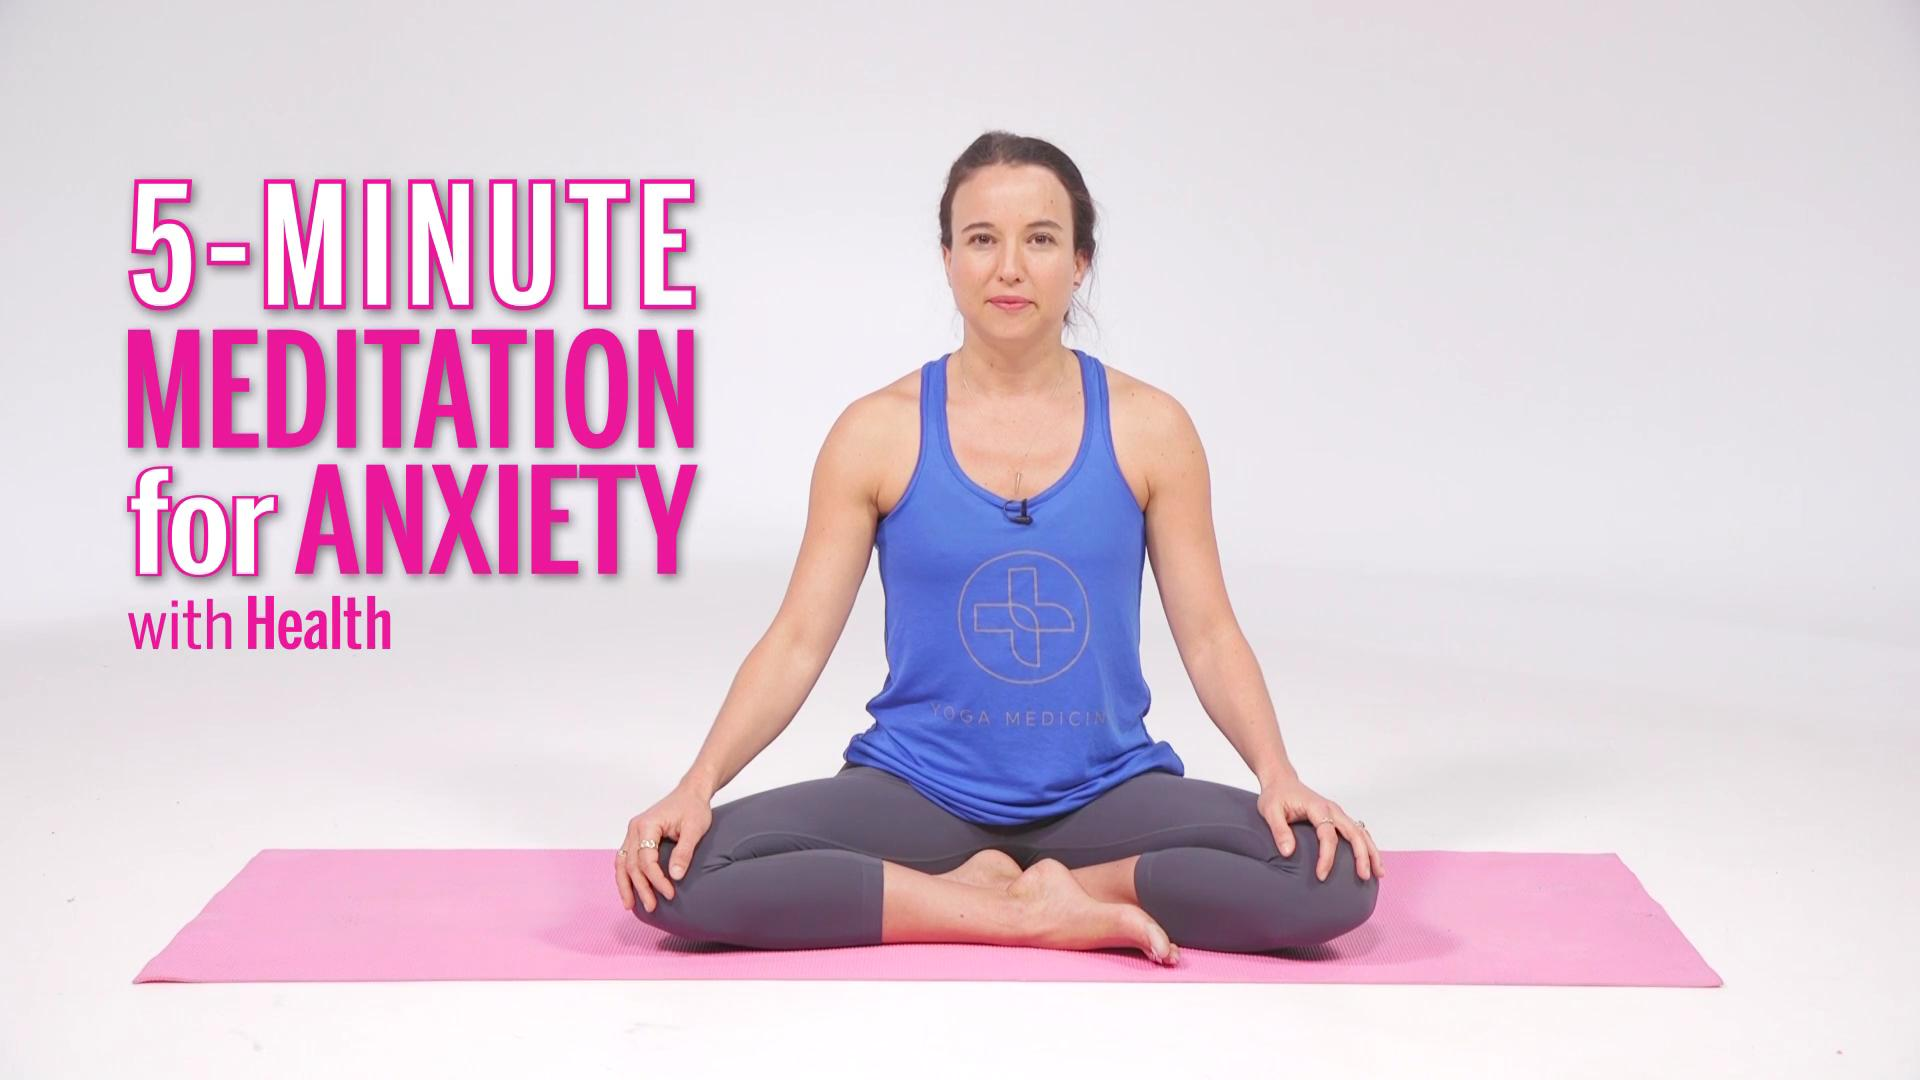 Meditation to help find your calm